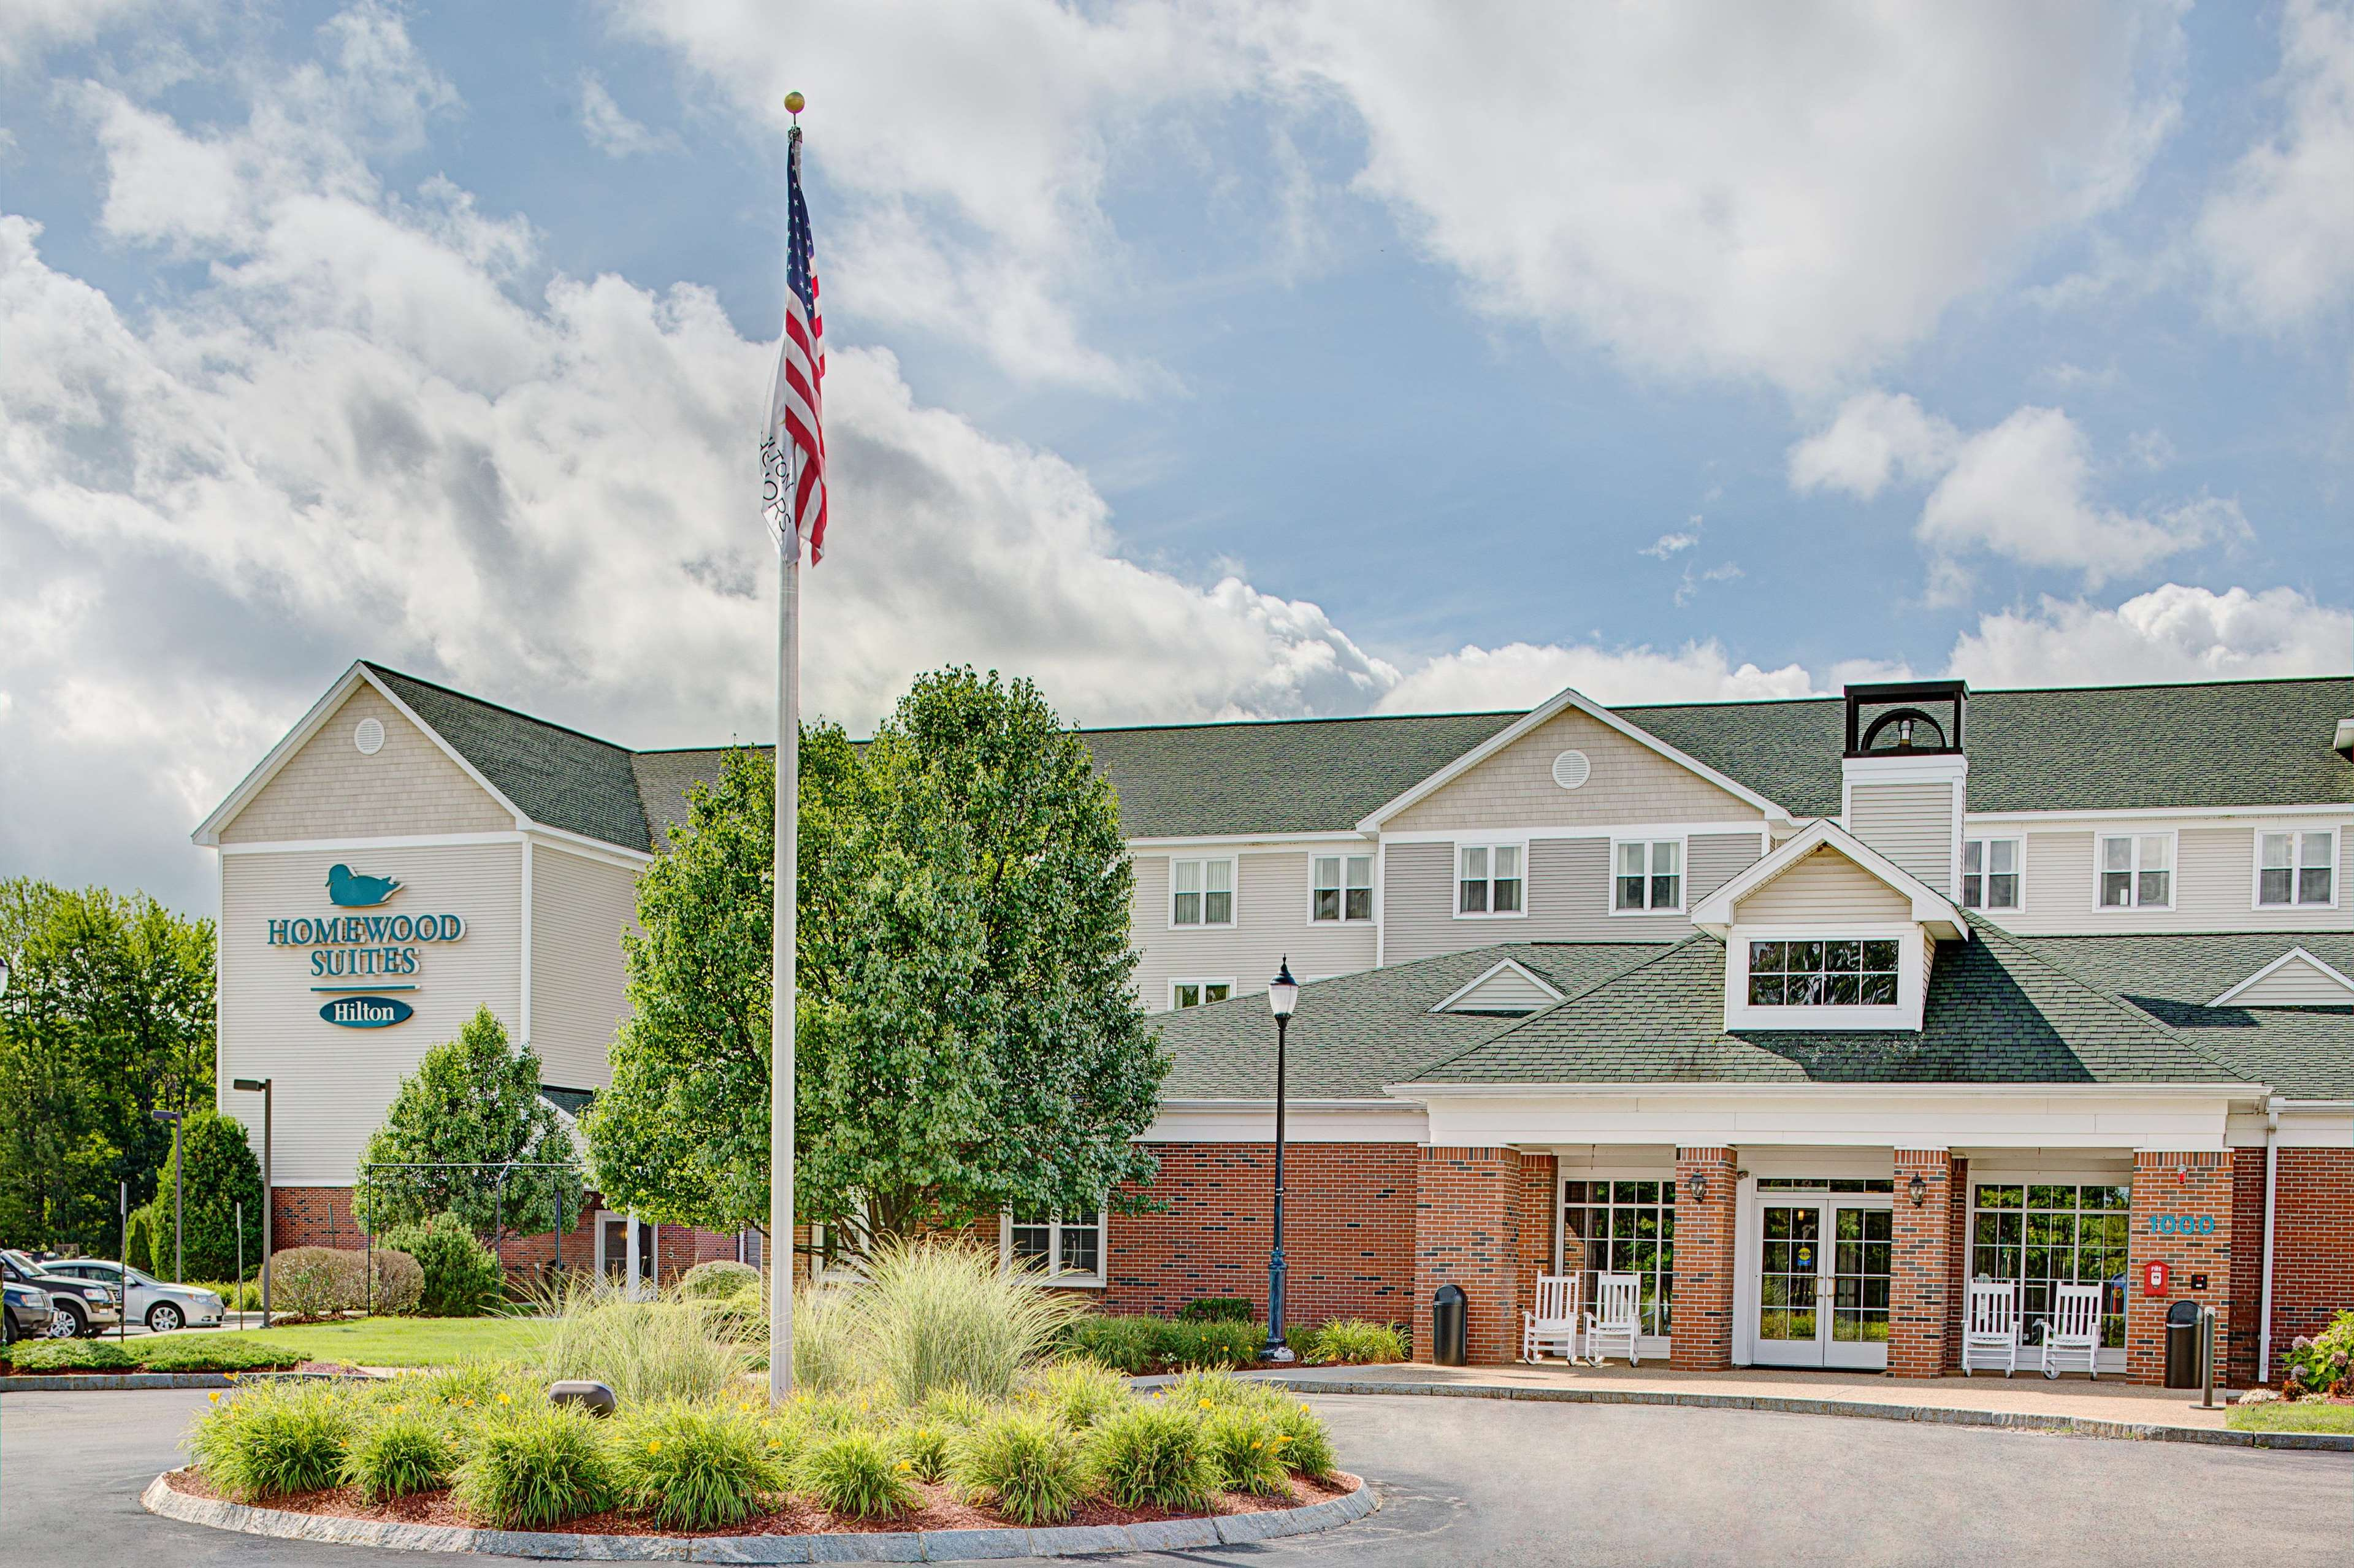 Homewood Suites by Hilton Manchester/Airport image 0